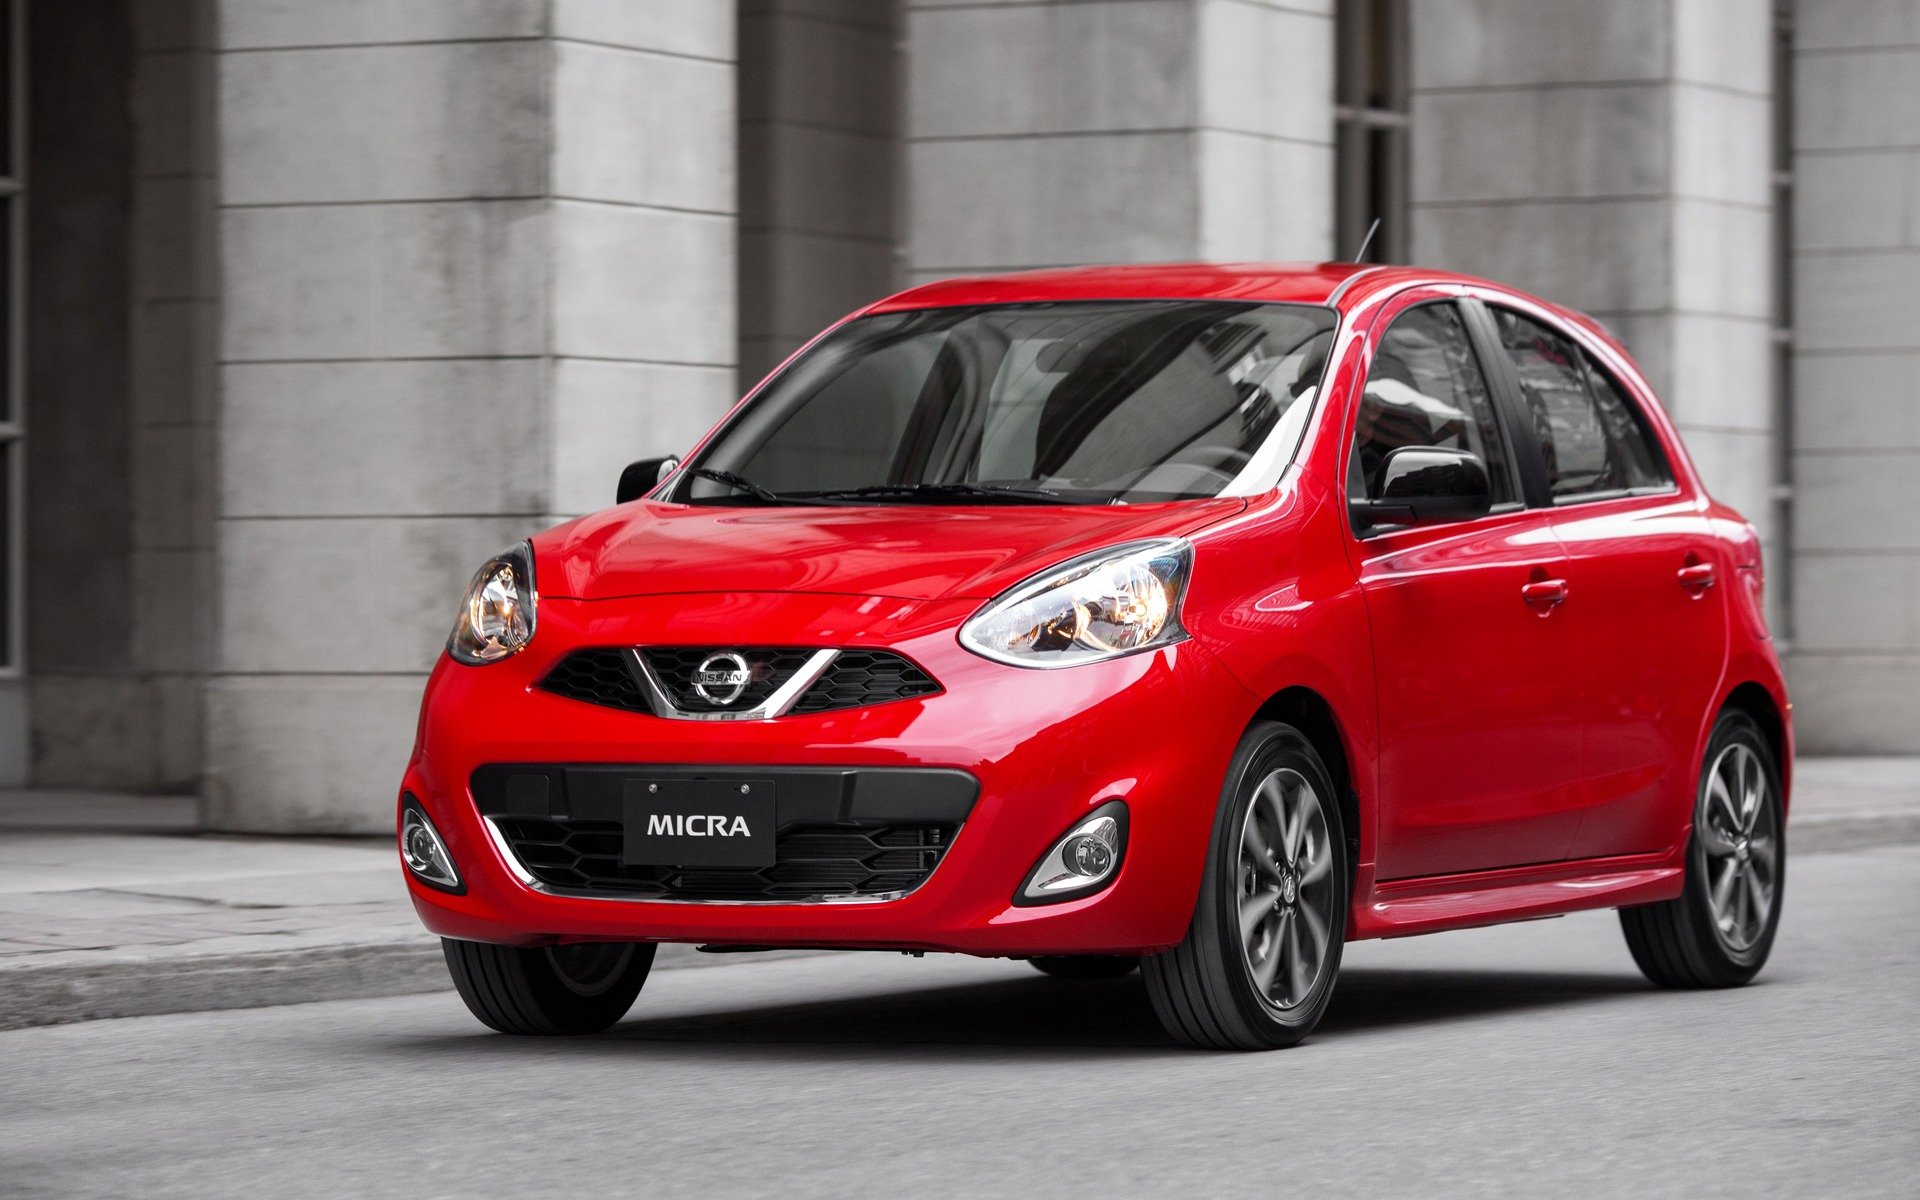 2019 nissan micra s price engine full technical specifications Nissan Micra 2018 South Africa 2019 nissan micra s price engine full technical specifications the car guide motoring tv